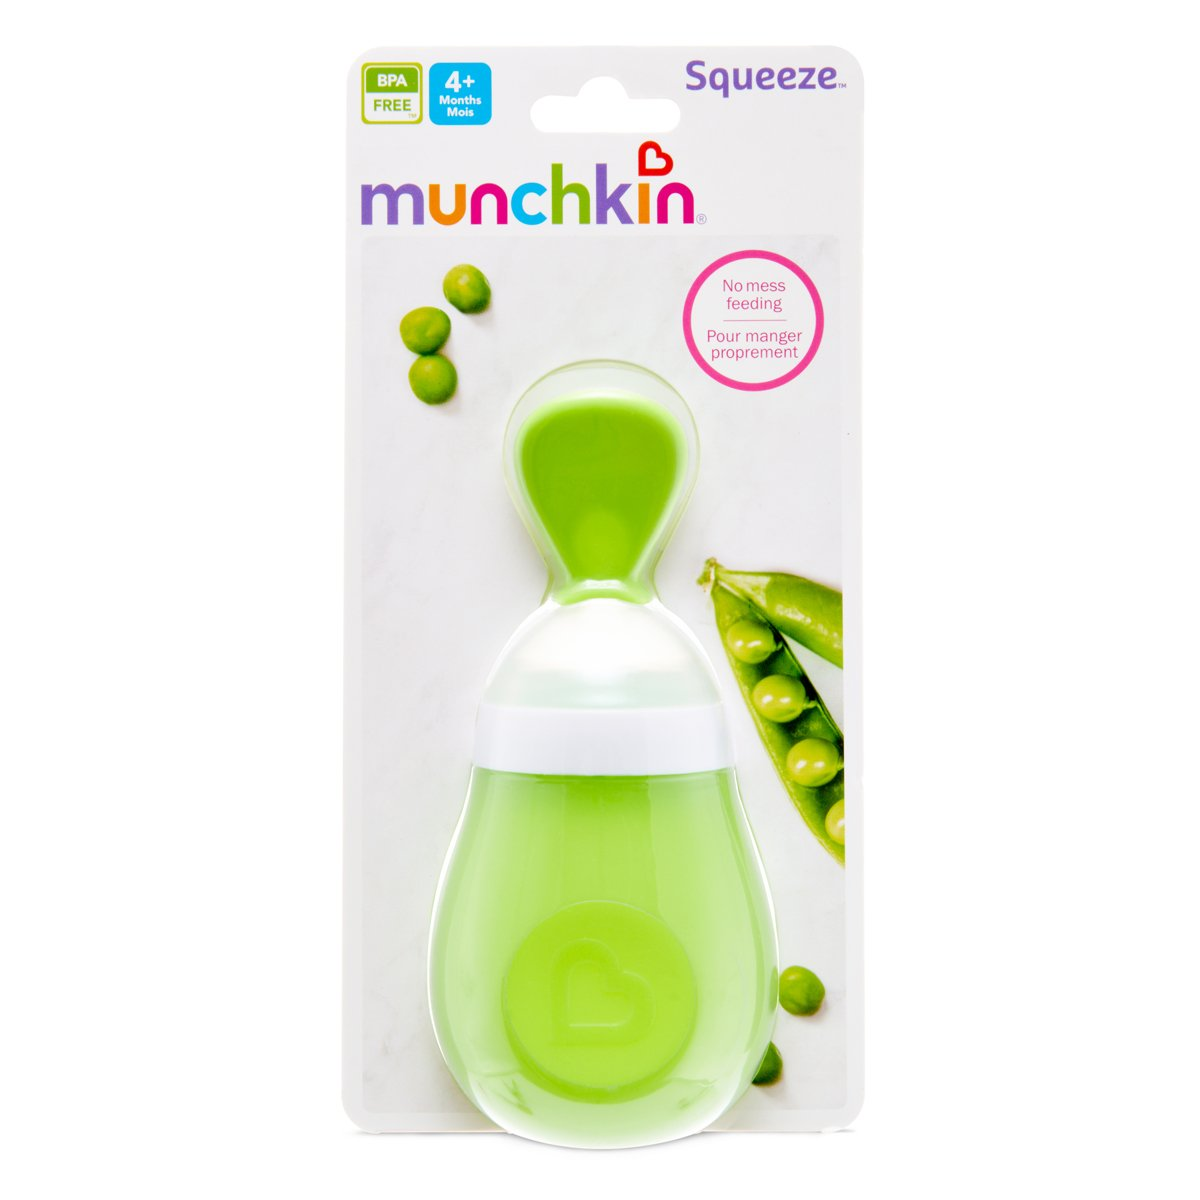 Munchkin SQUEEZE SPOON (Colors May Vary) 15807